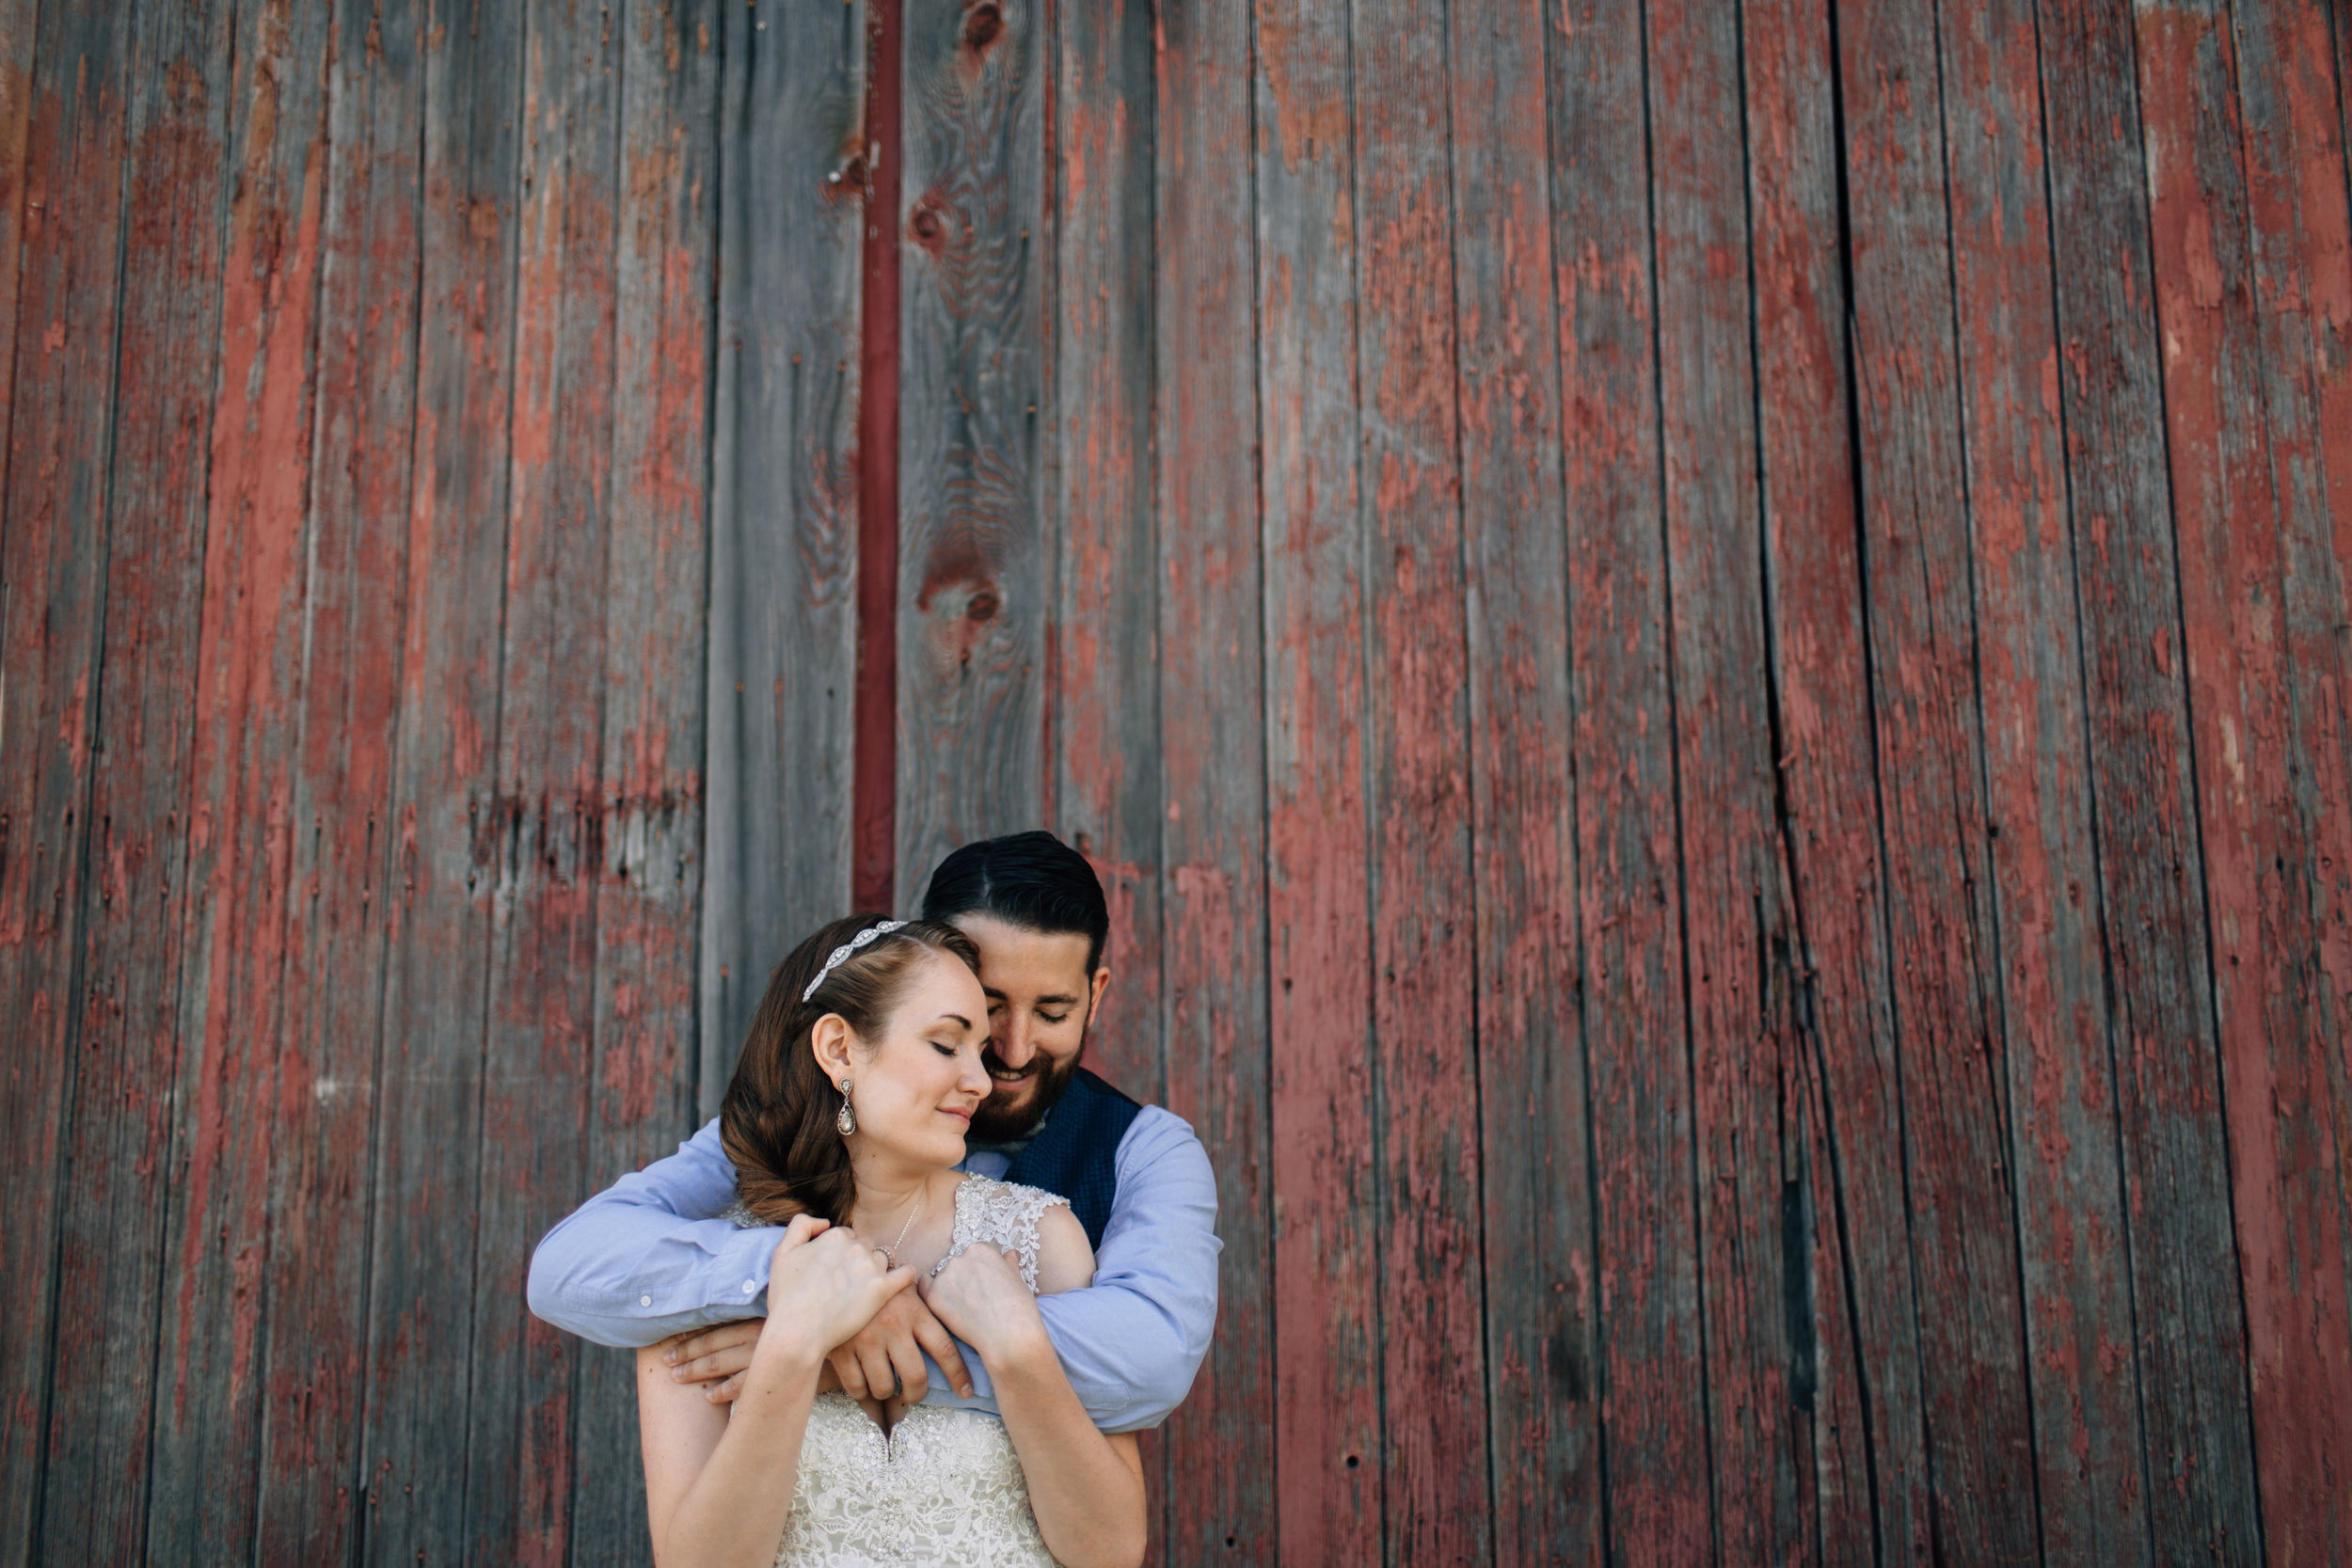 KELLIandBRADweddingJUNE2015 - portraits (63 of 142).jpg